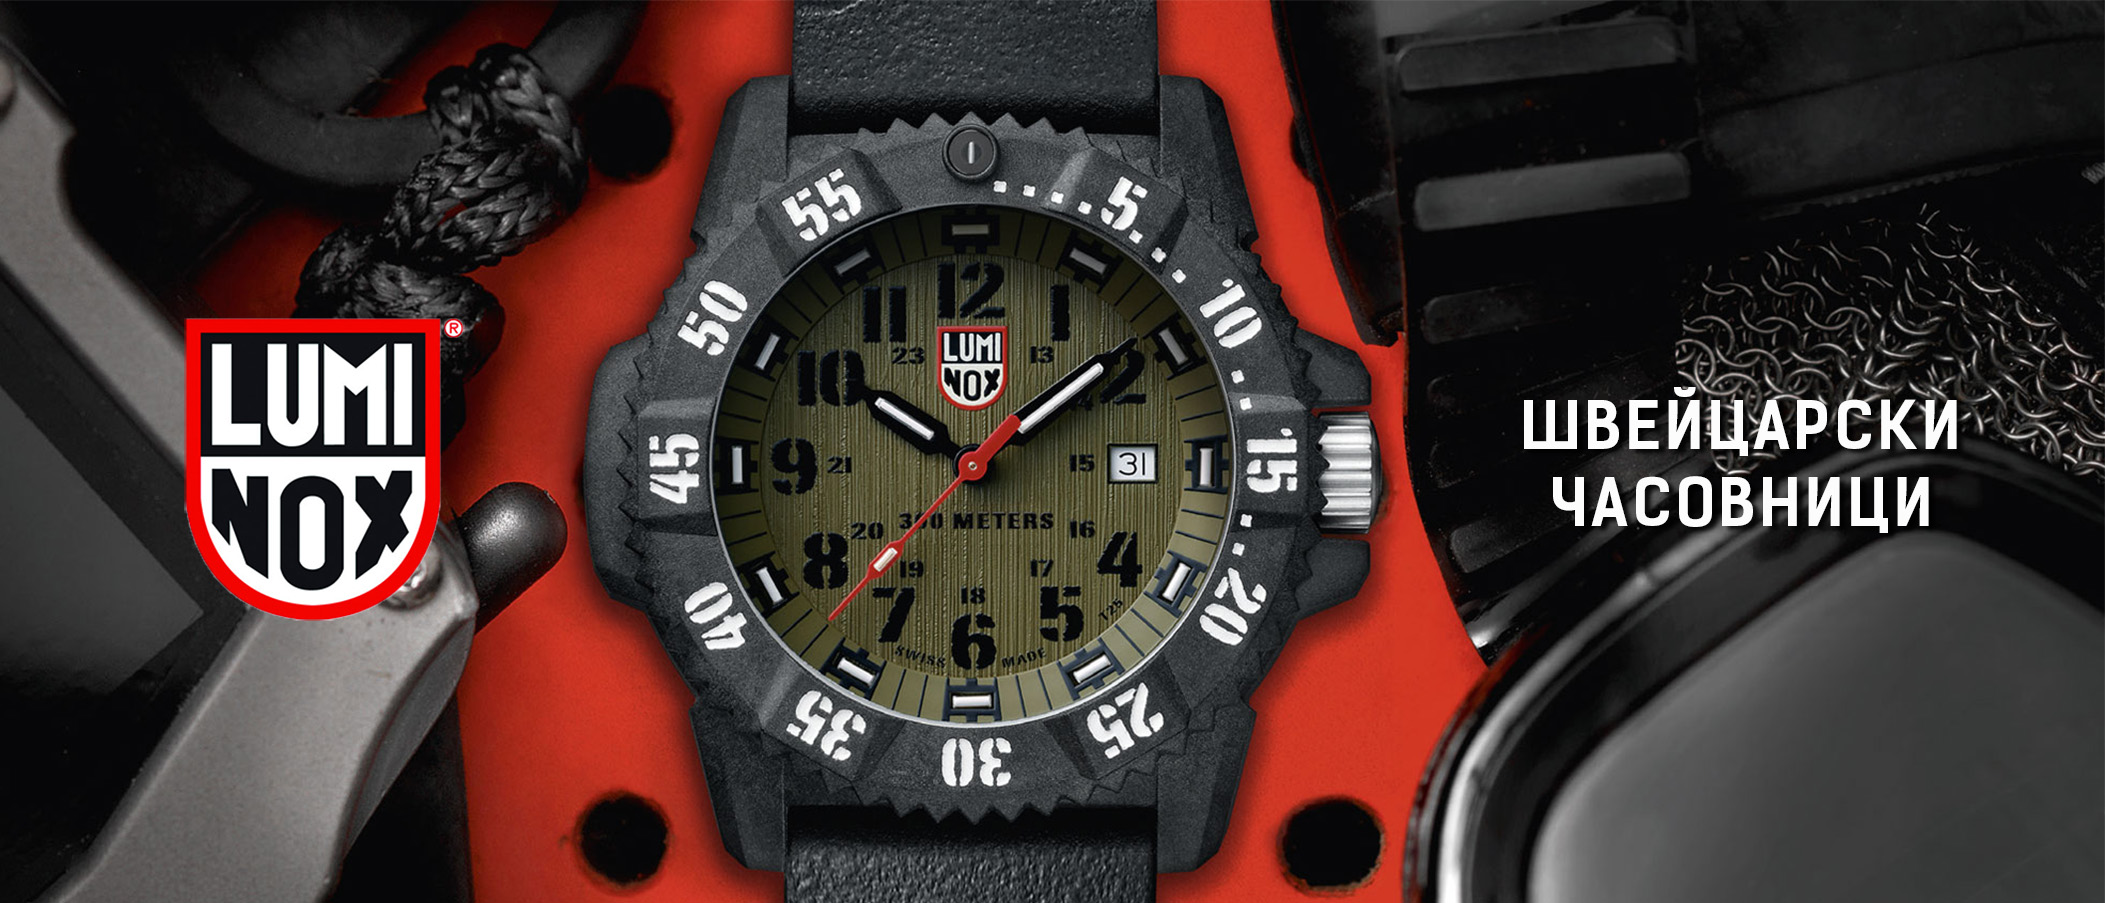 Luminox-slider-bg